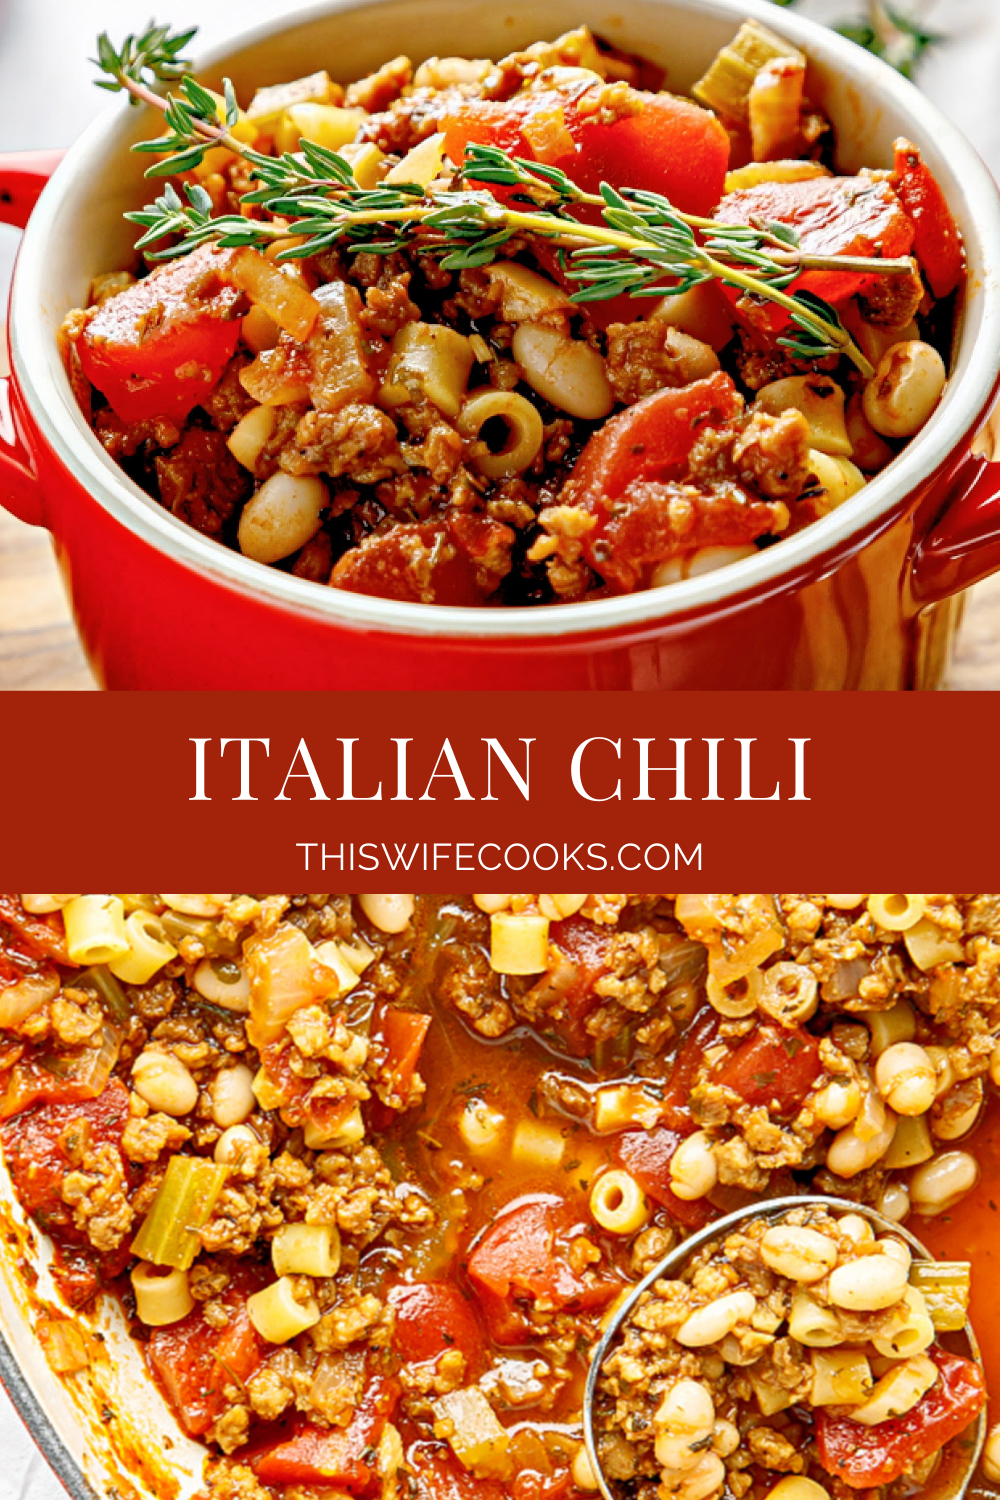 This Italian Chili recipe is hearty, comforting, and easy to make with simple ingredients and Italian seasonings. via @thiswifecooks